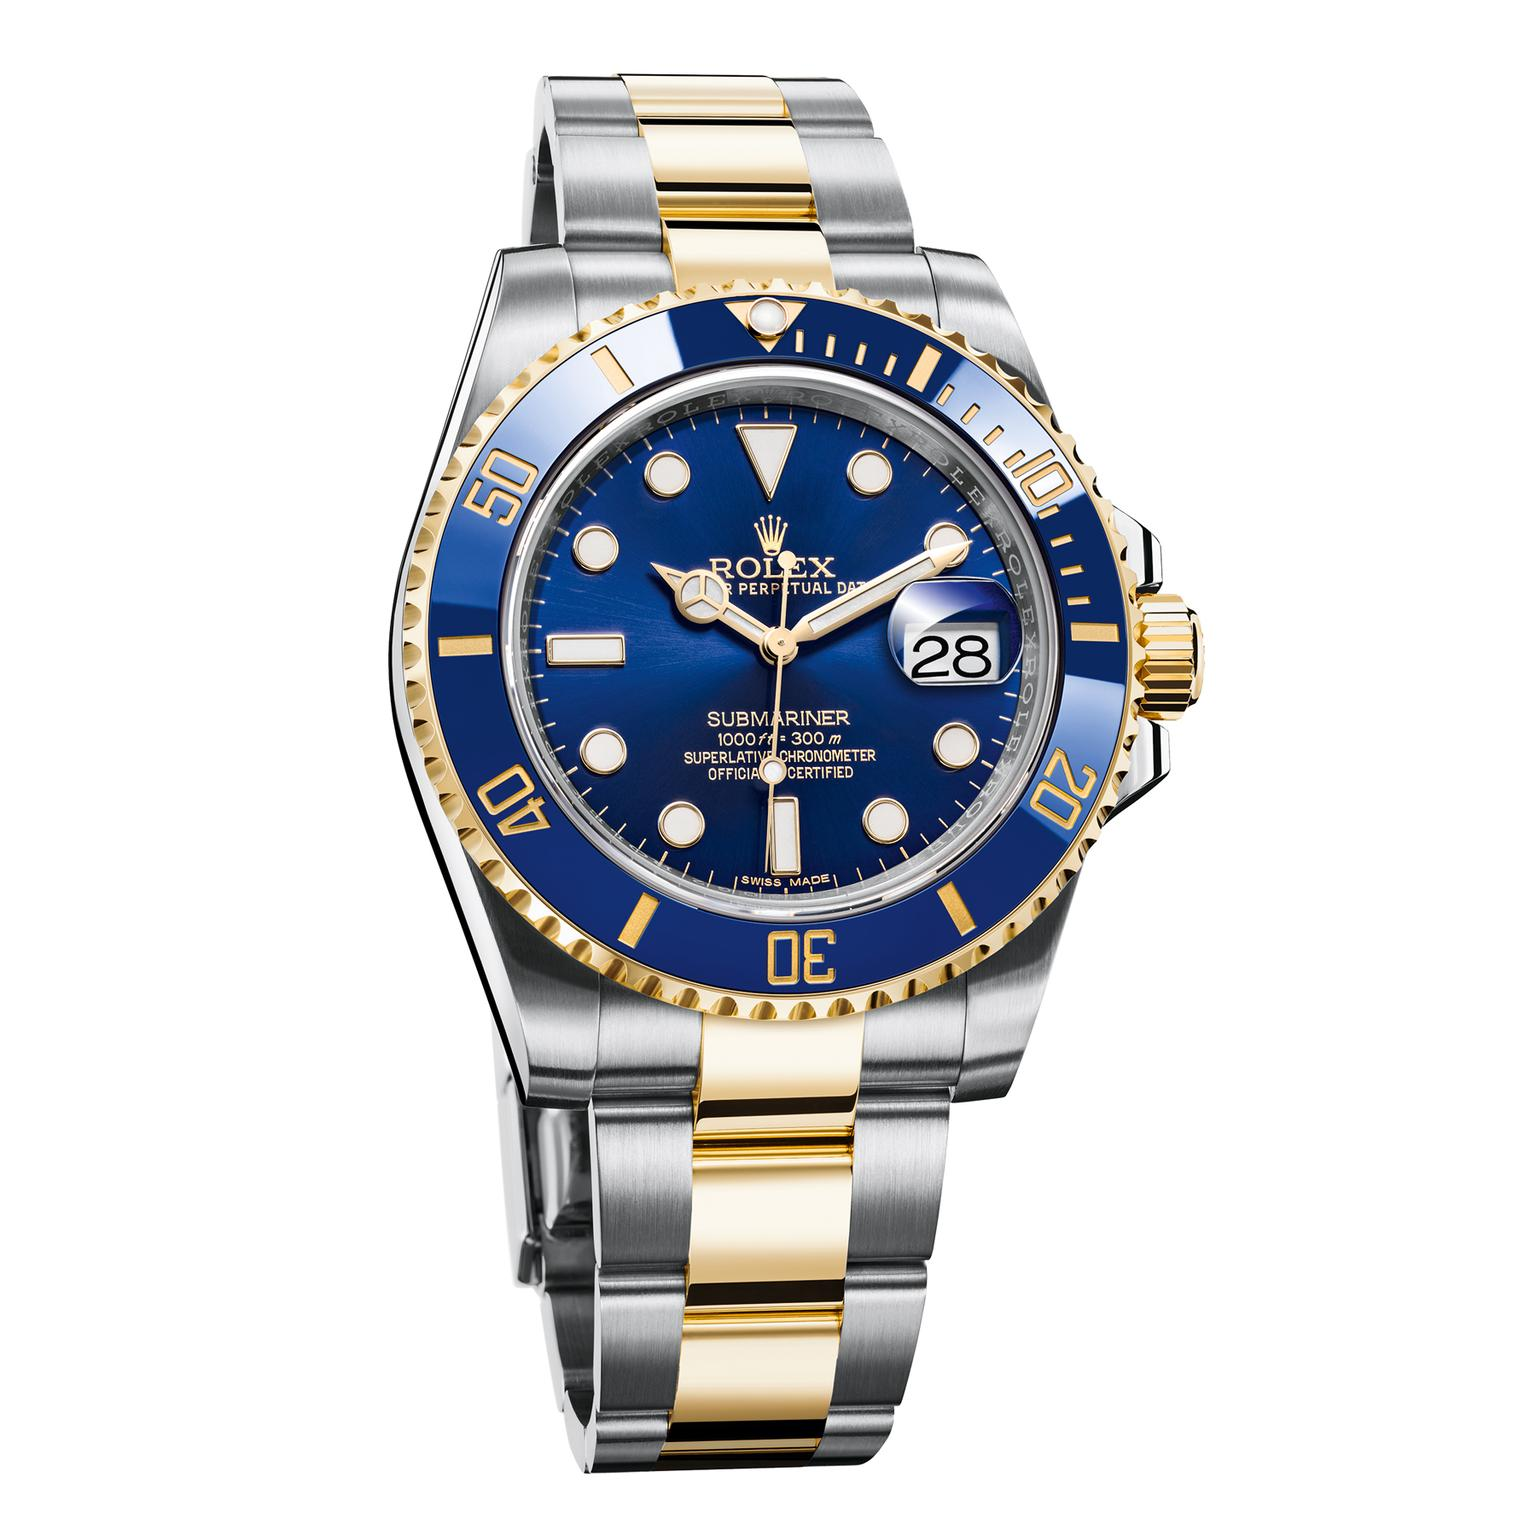 Rolex-Oyster-Perpetual-Submariner-Date